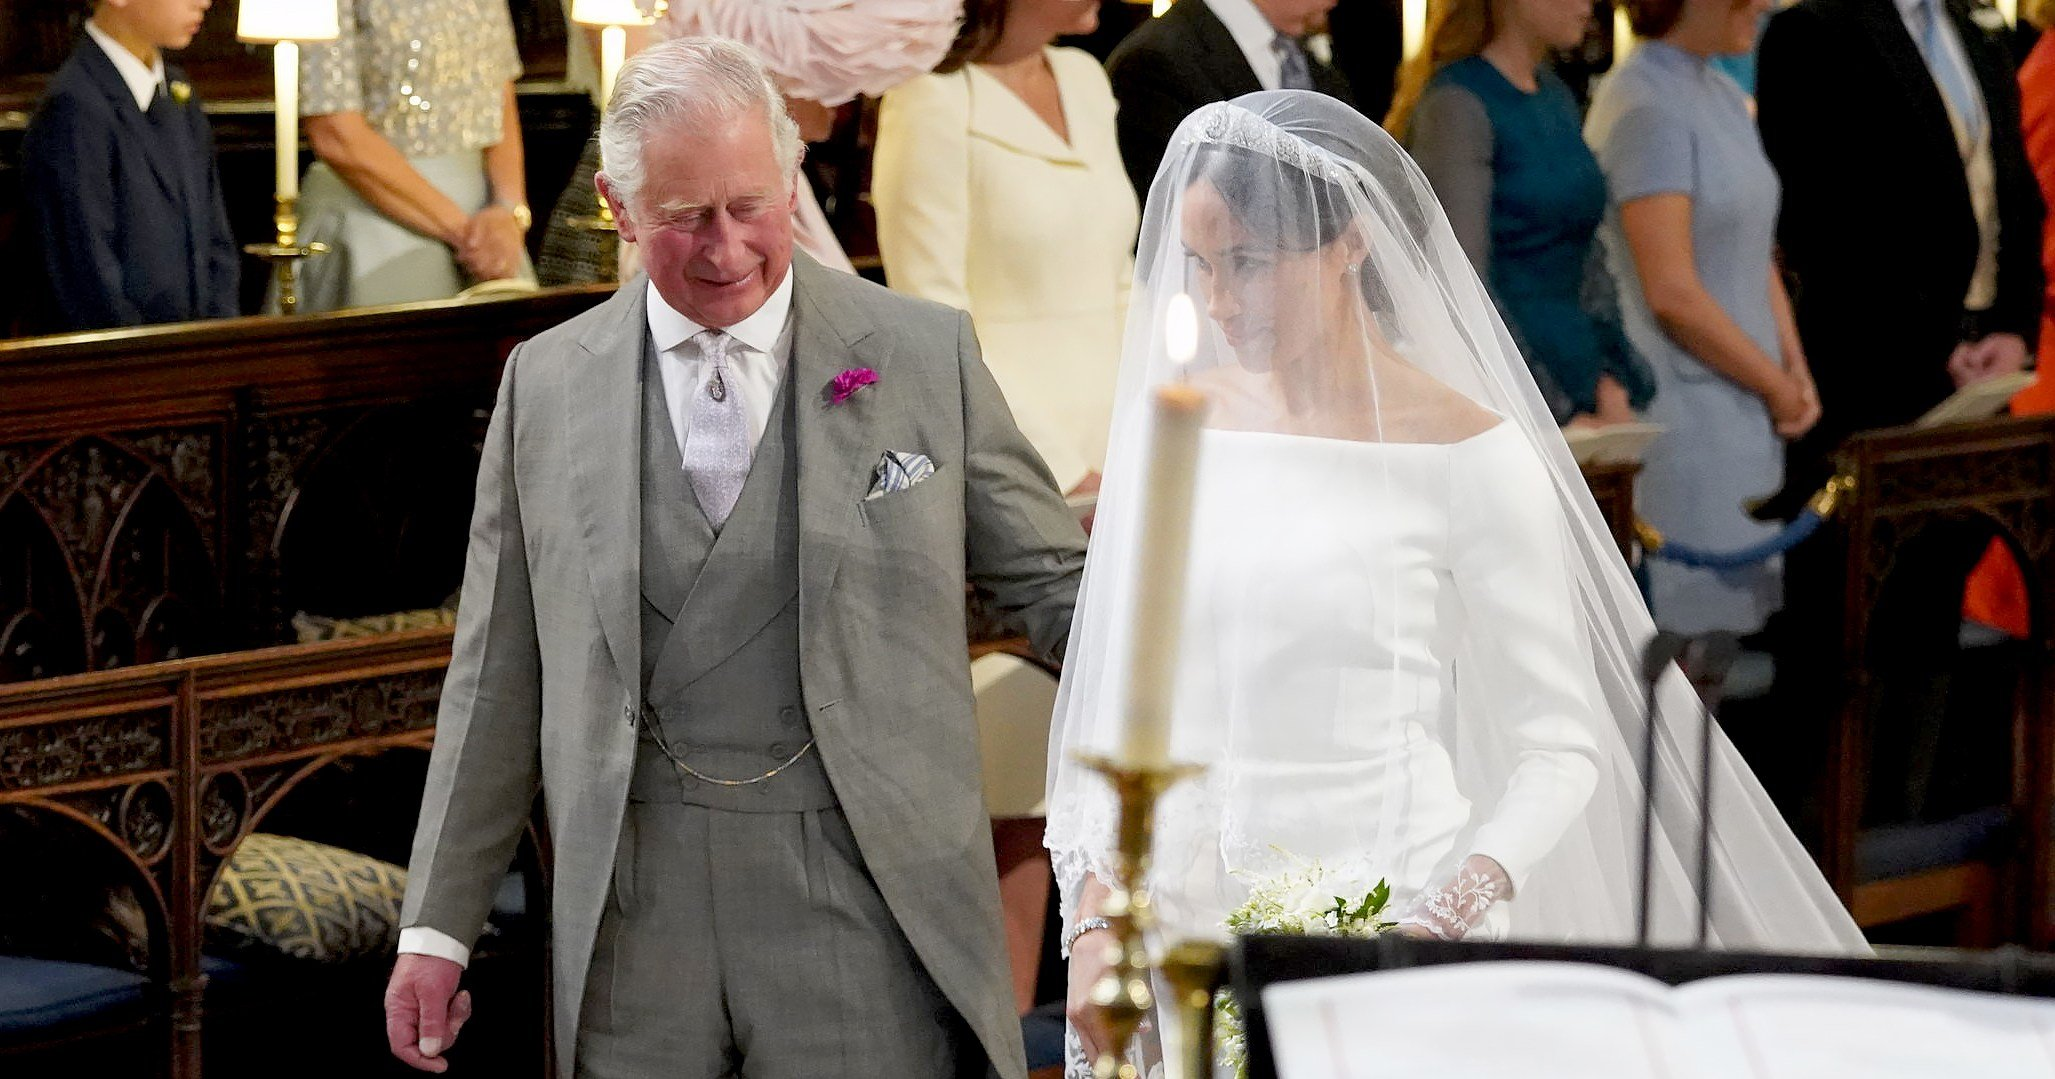 Meghan Markle Walks Down Aisle With Prince Charles At